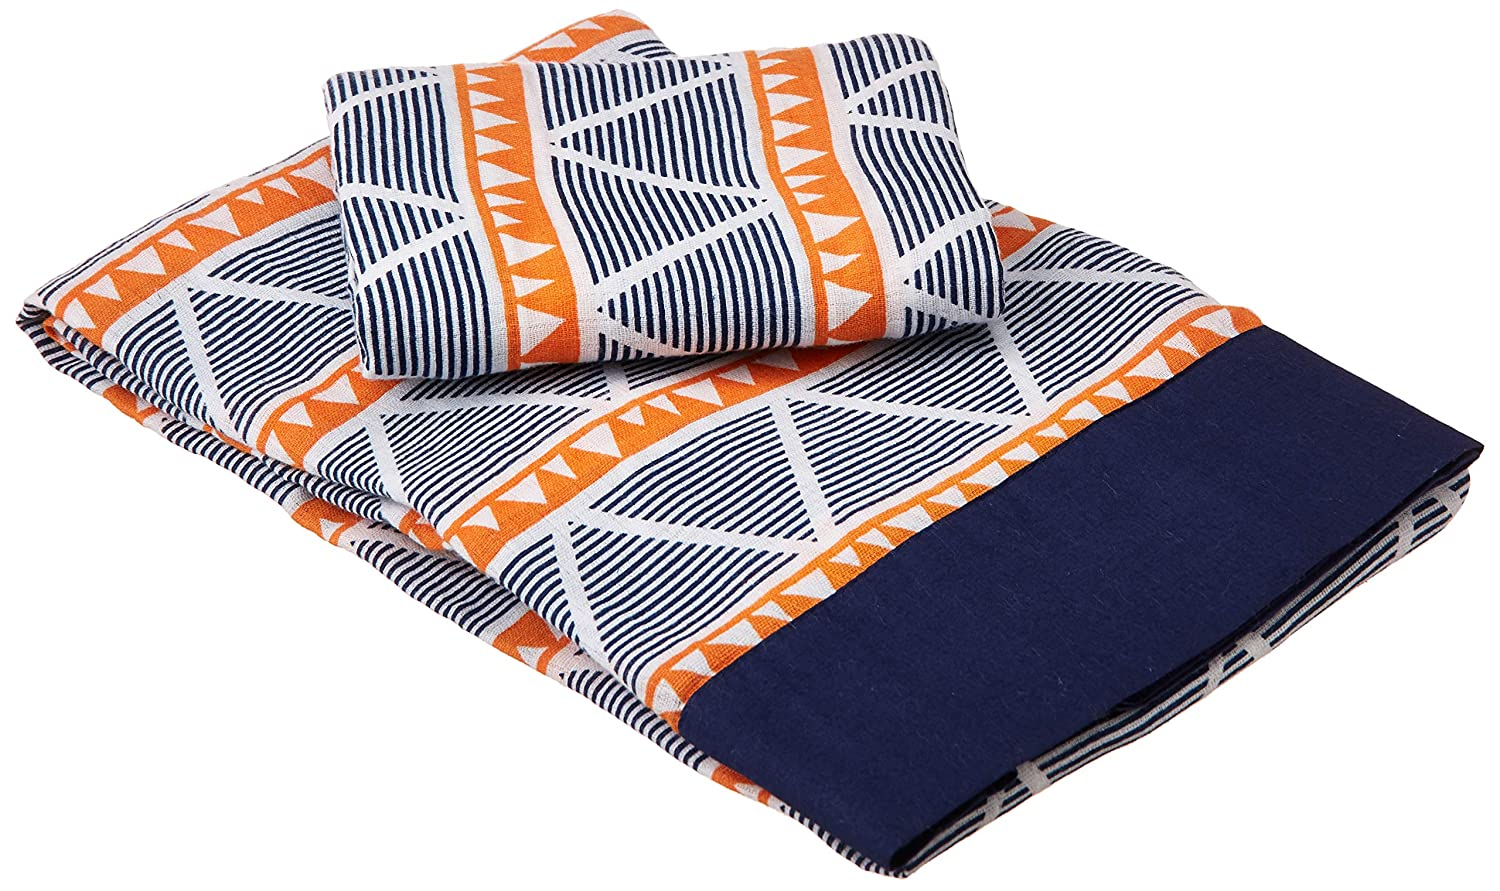 Bacati Aztec//Tribal Triangles 3 Piece Cotton Breathable Muslin Toddler Bedding Sheet Set Large Aqua//Navy